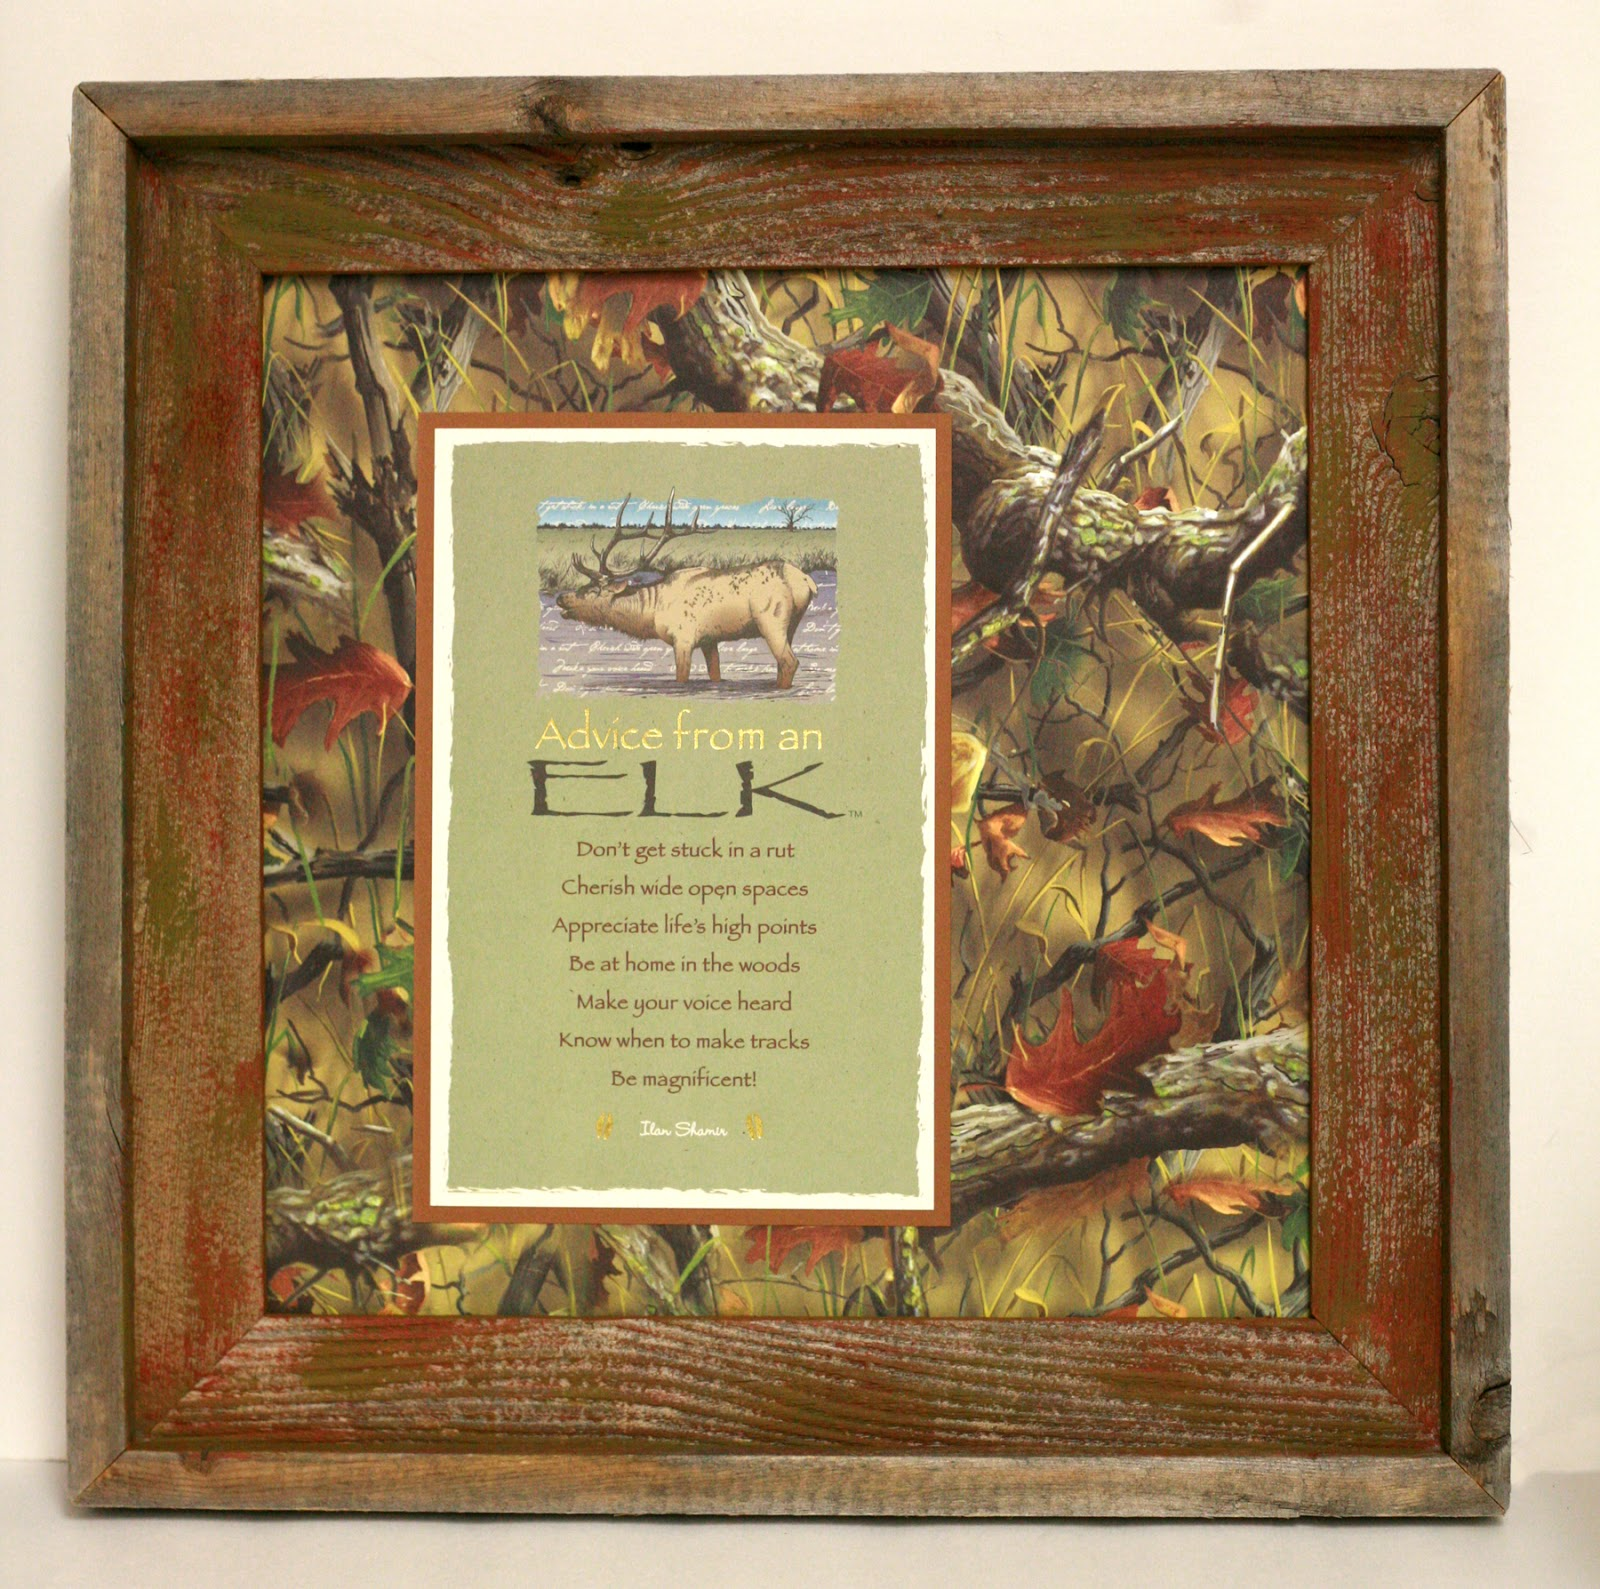 Ben Franklin Crafts and Frame Shop: Advice From an Elk Wall Art